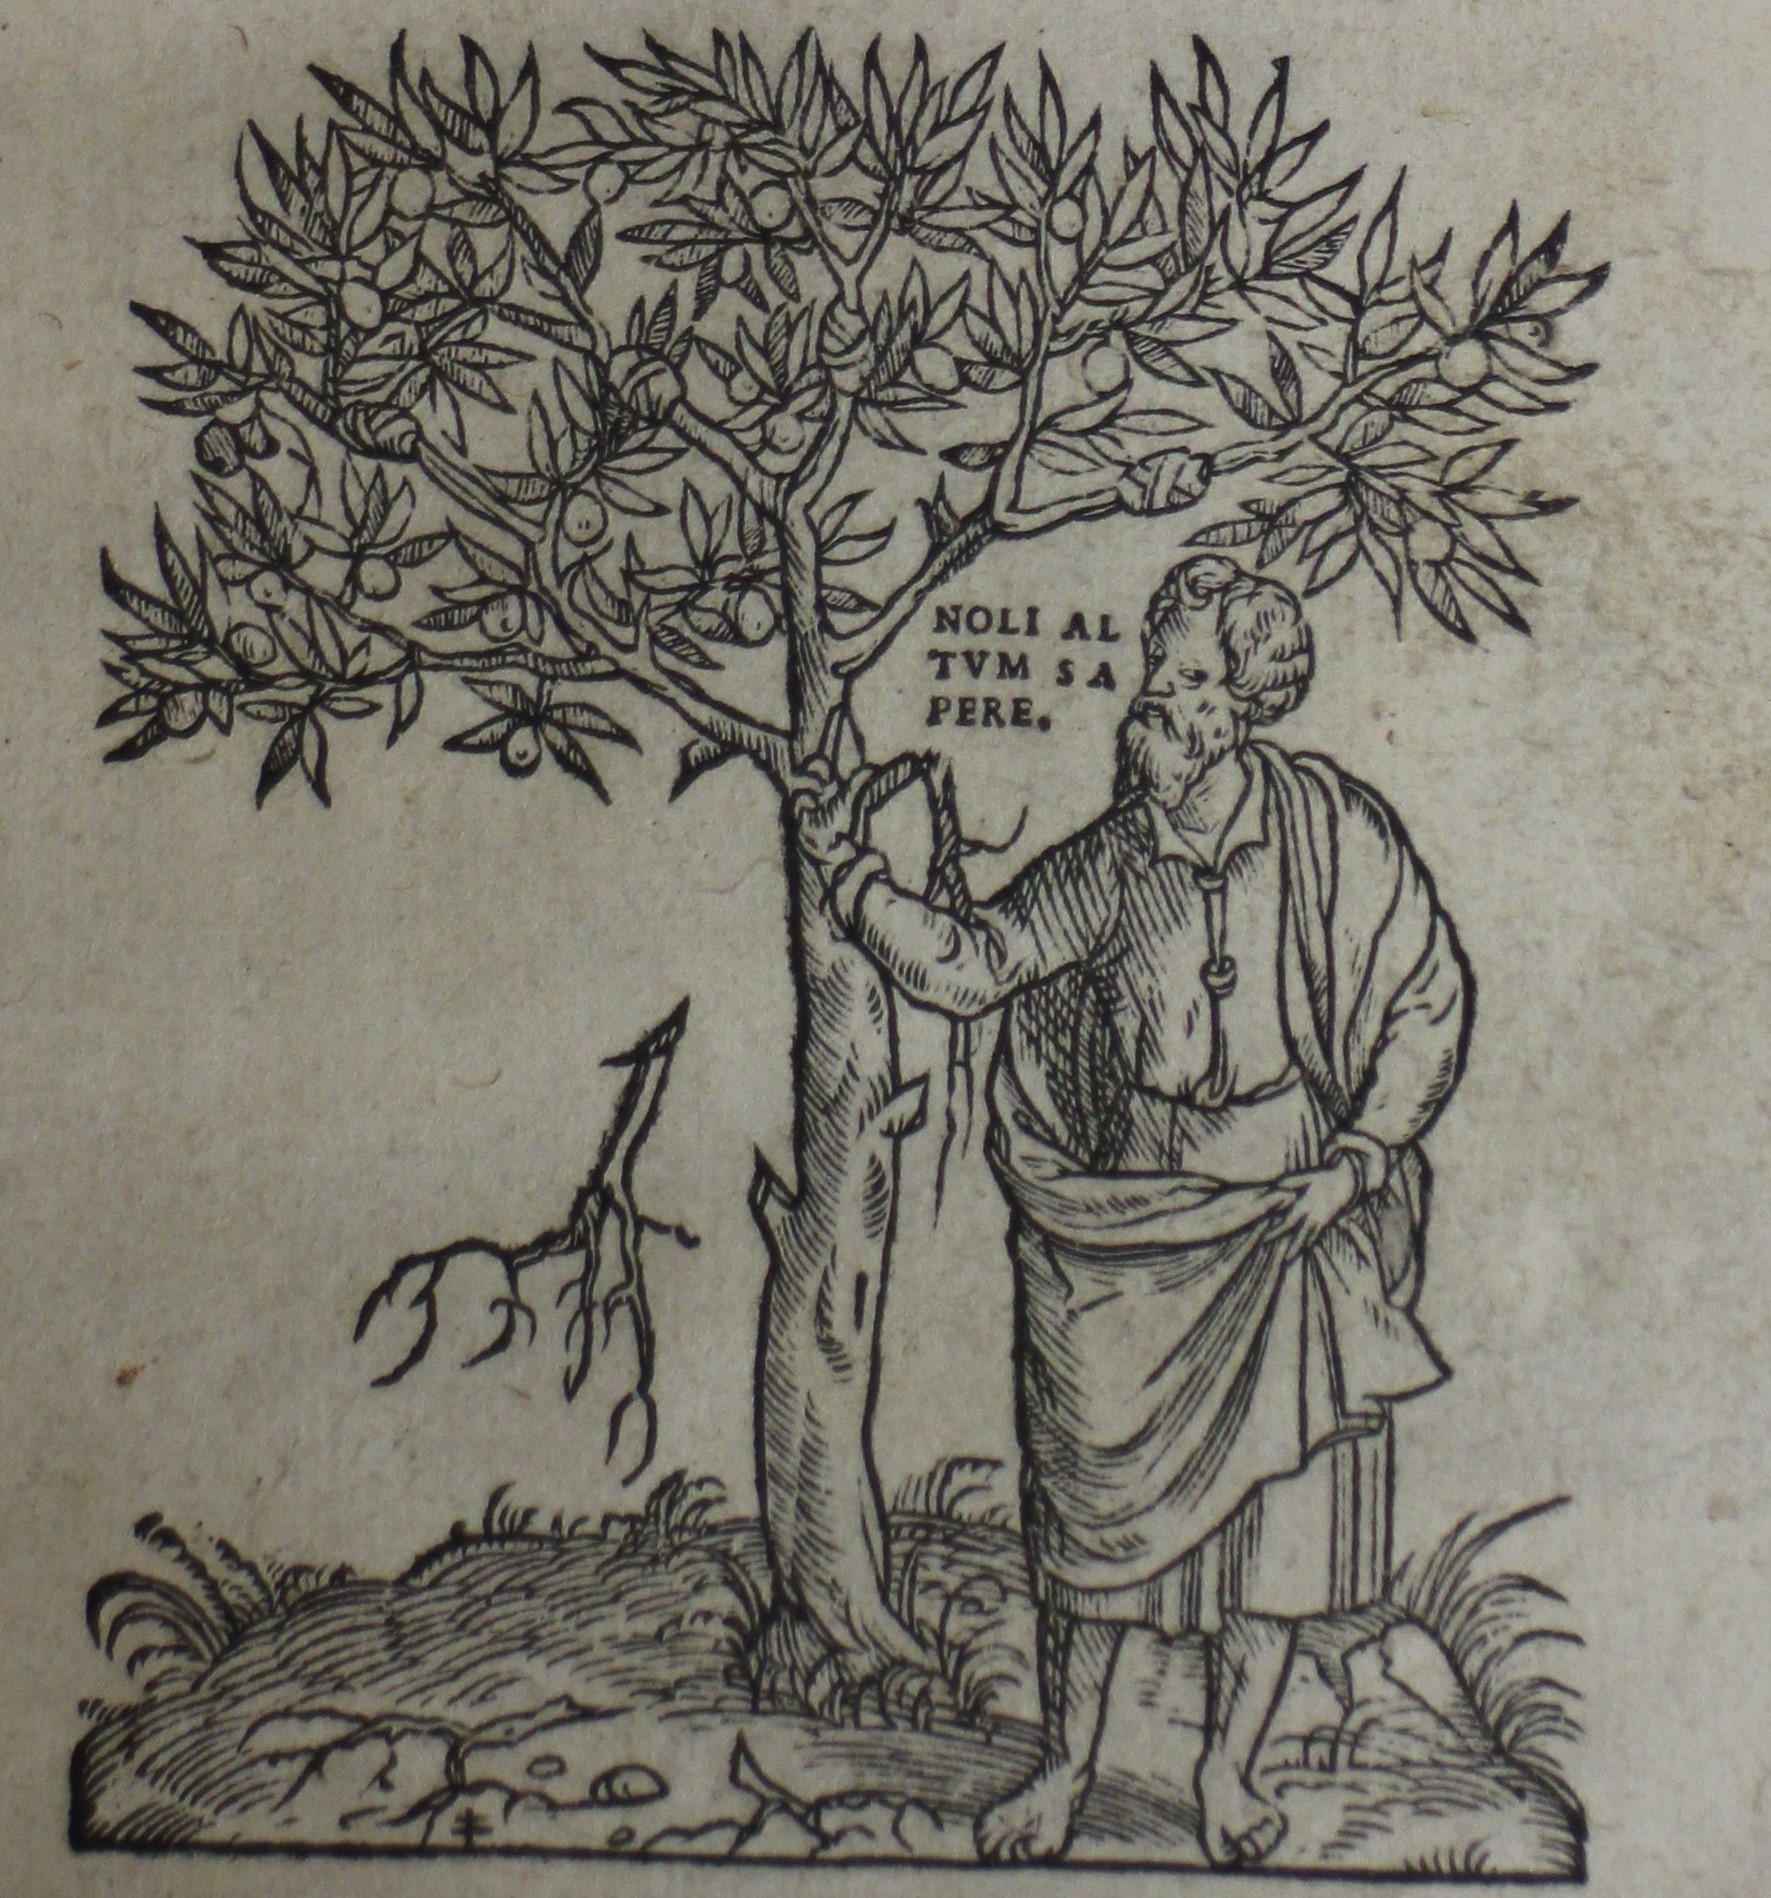 Printer's device of a man standing beside a tree